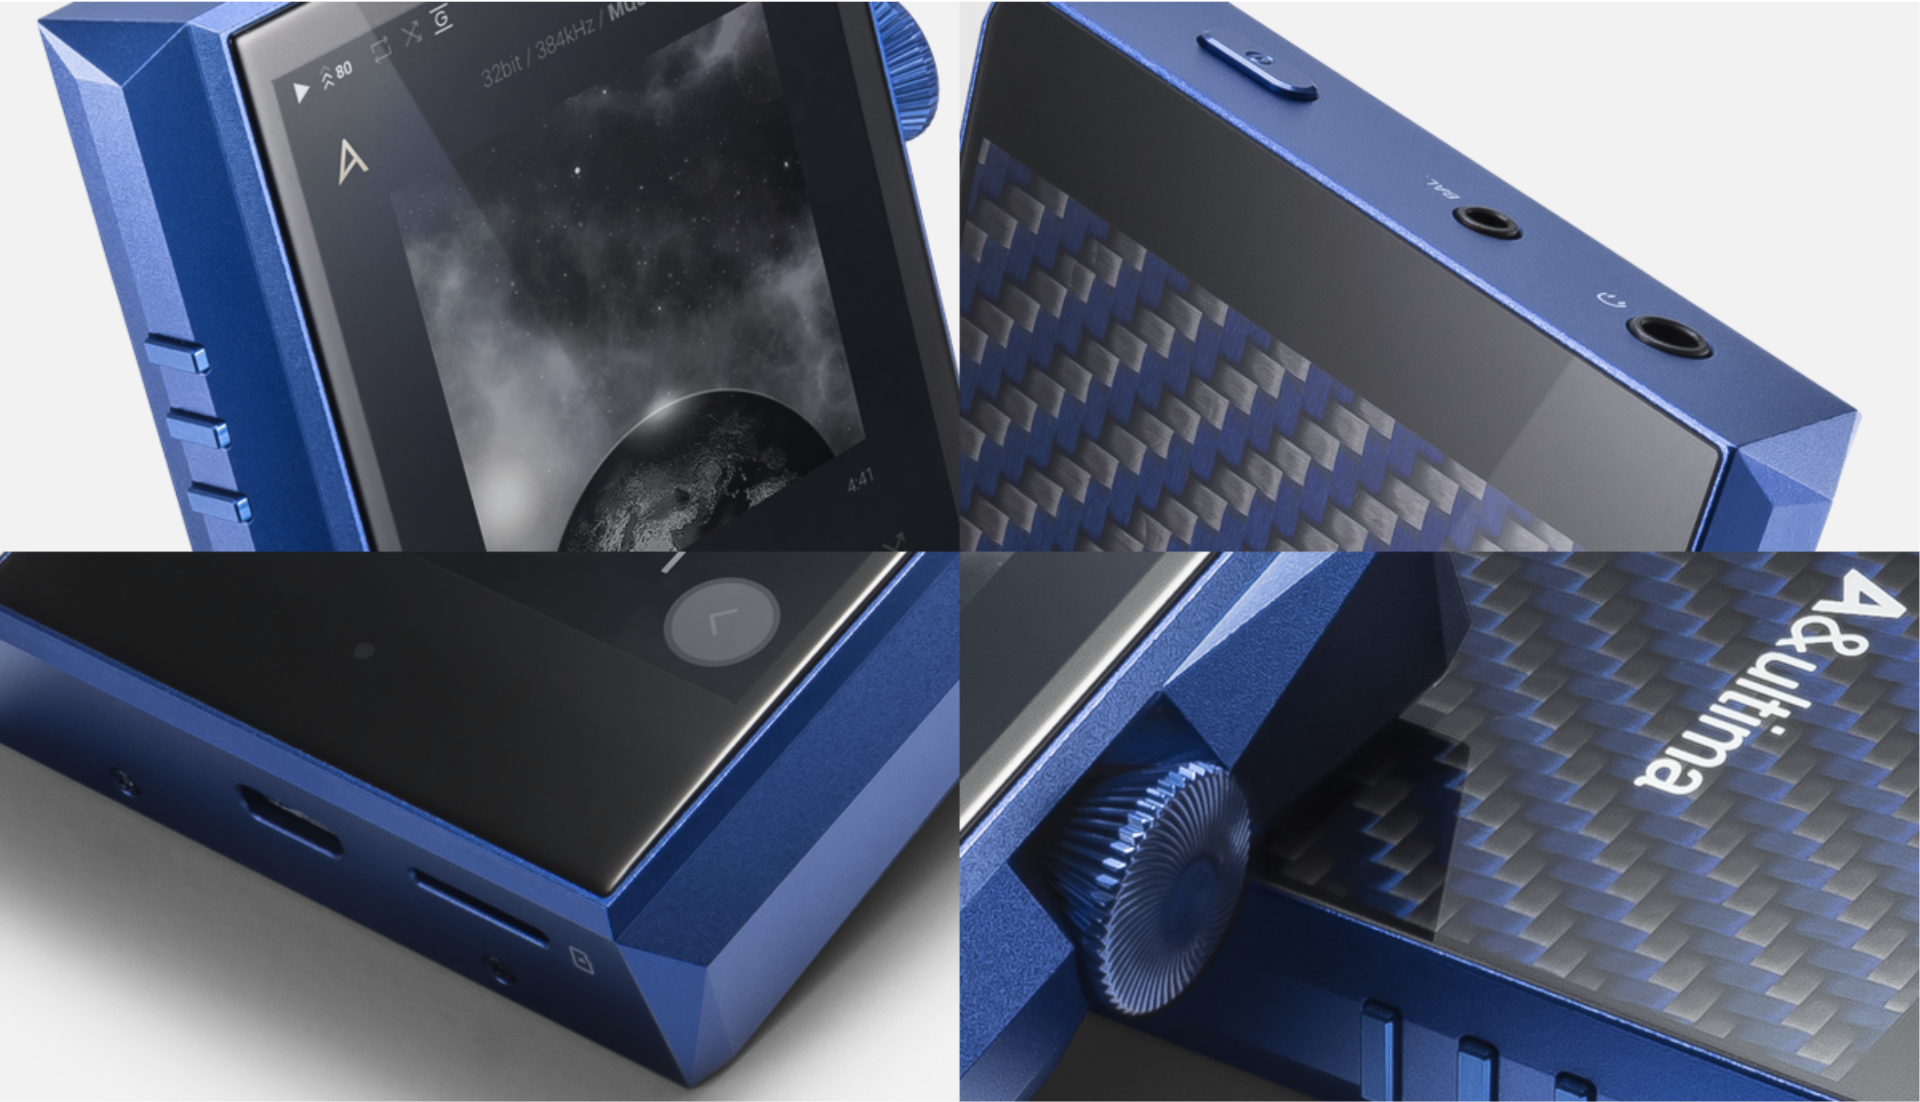 Astell&Kern SP1000M detail images